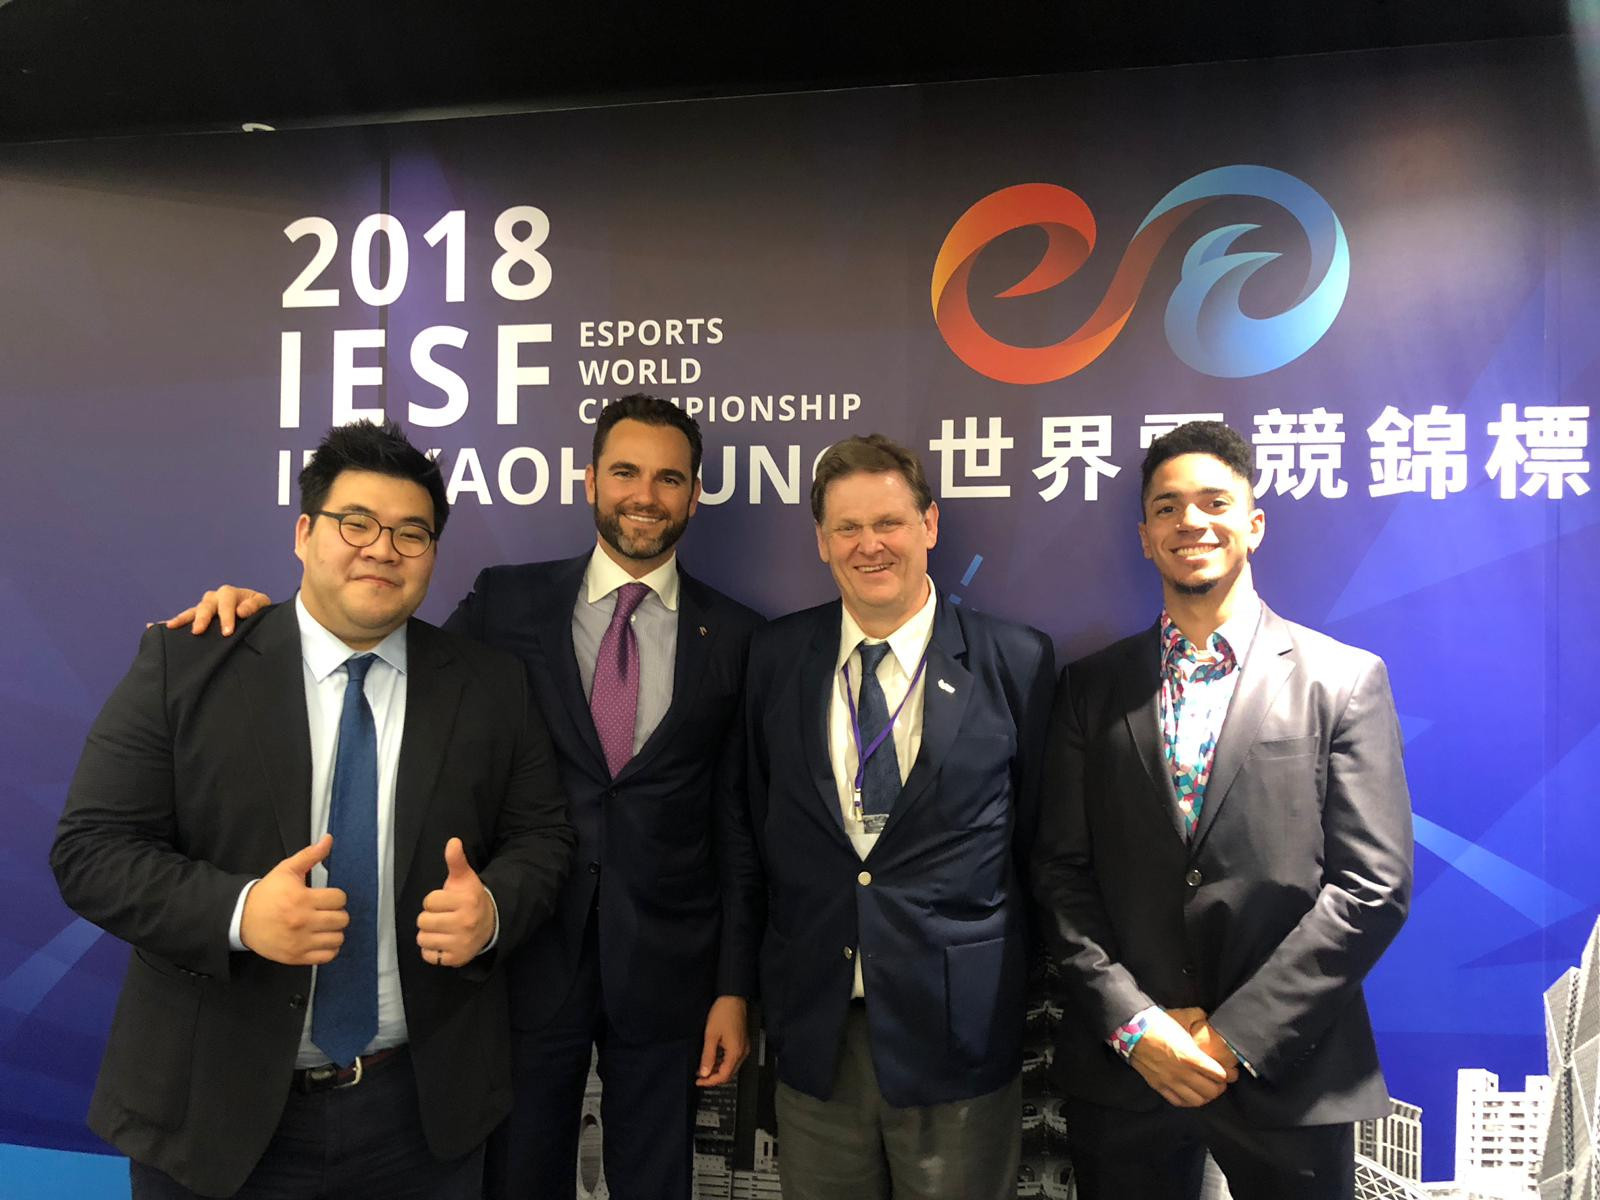 Vlad Marinescu, President of the United States eSports Federation, second left, wants to represent all of America's 60 million gaming fraternity after they were elected members of the International eSports Federation ©USeF